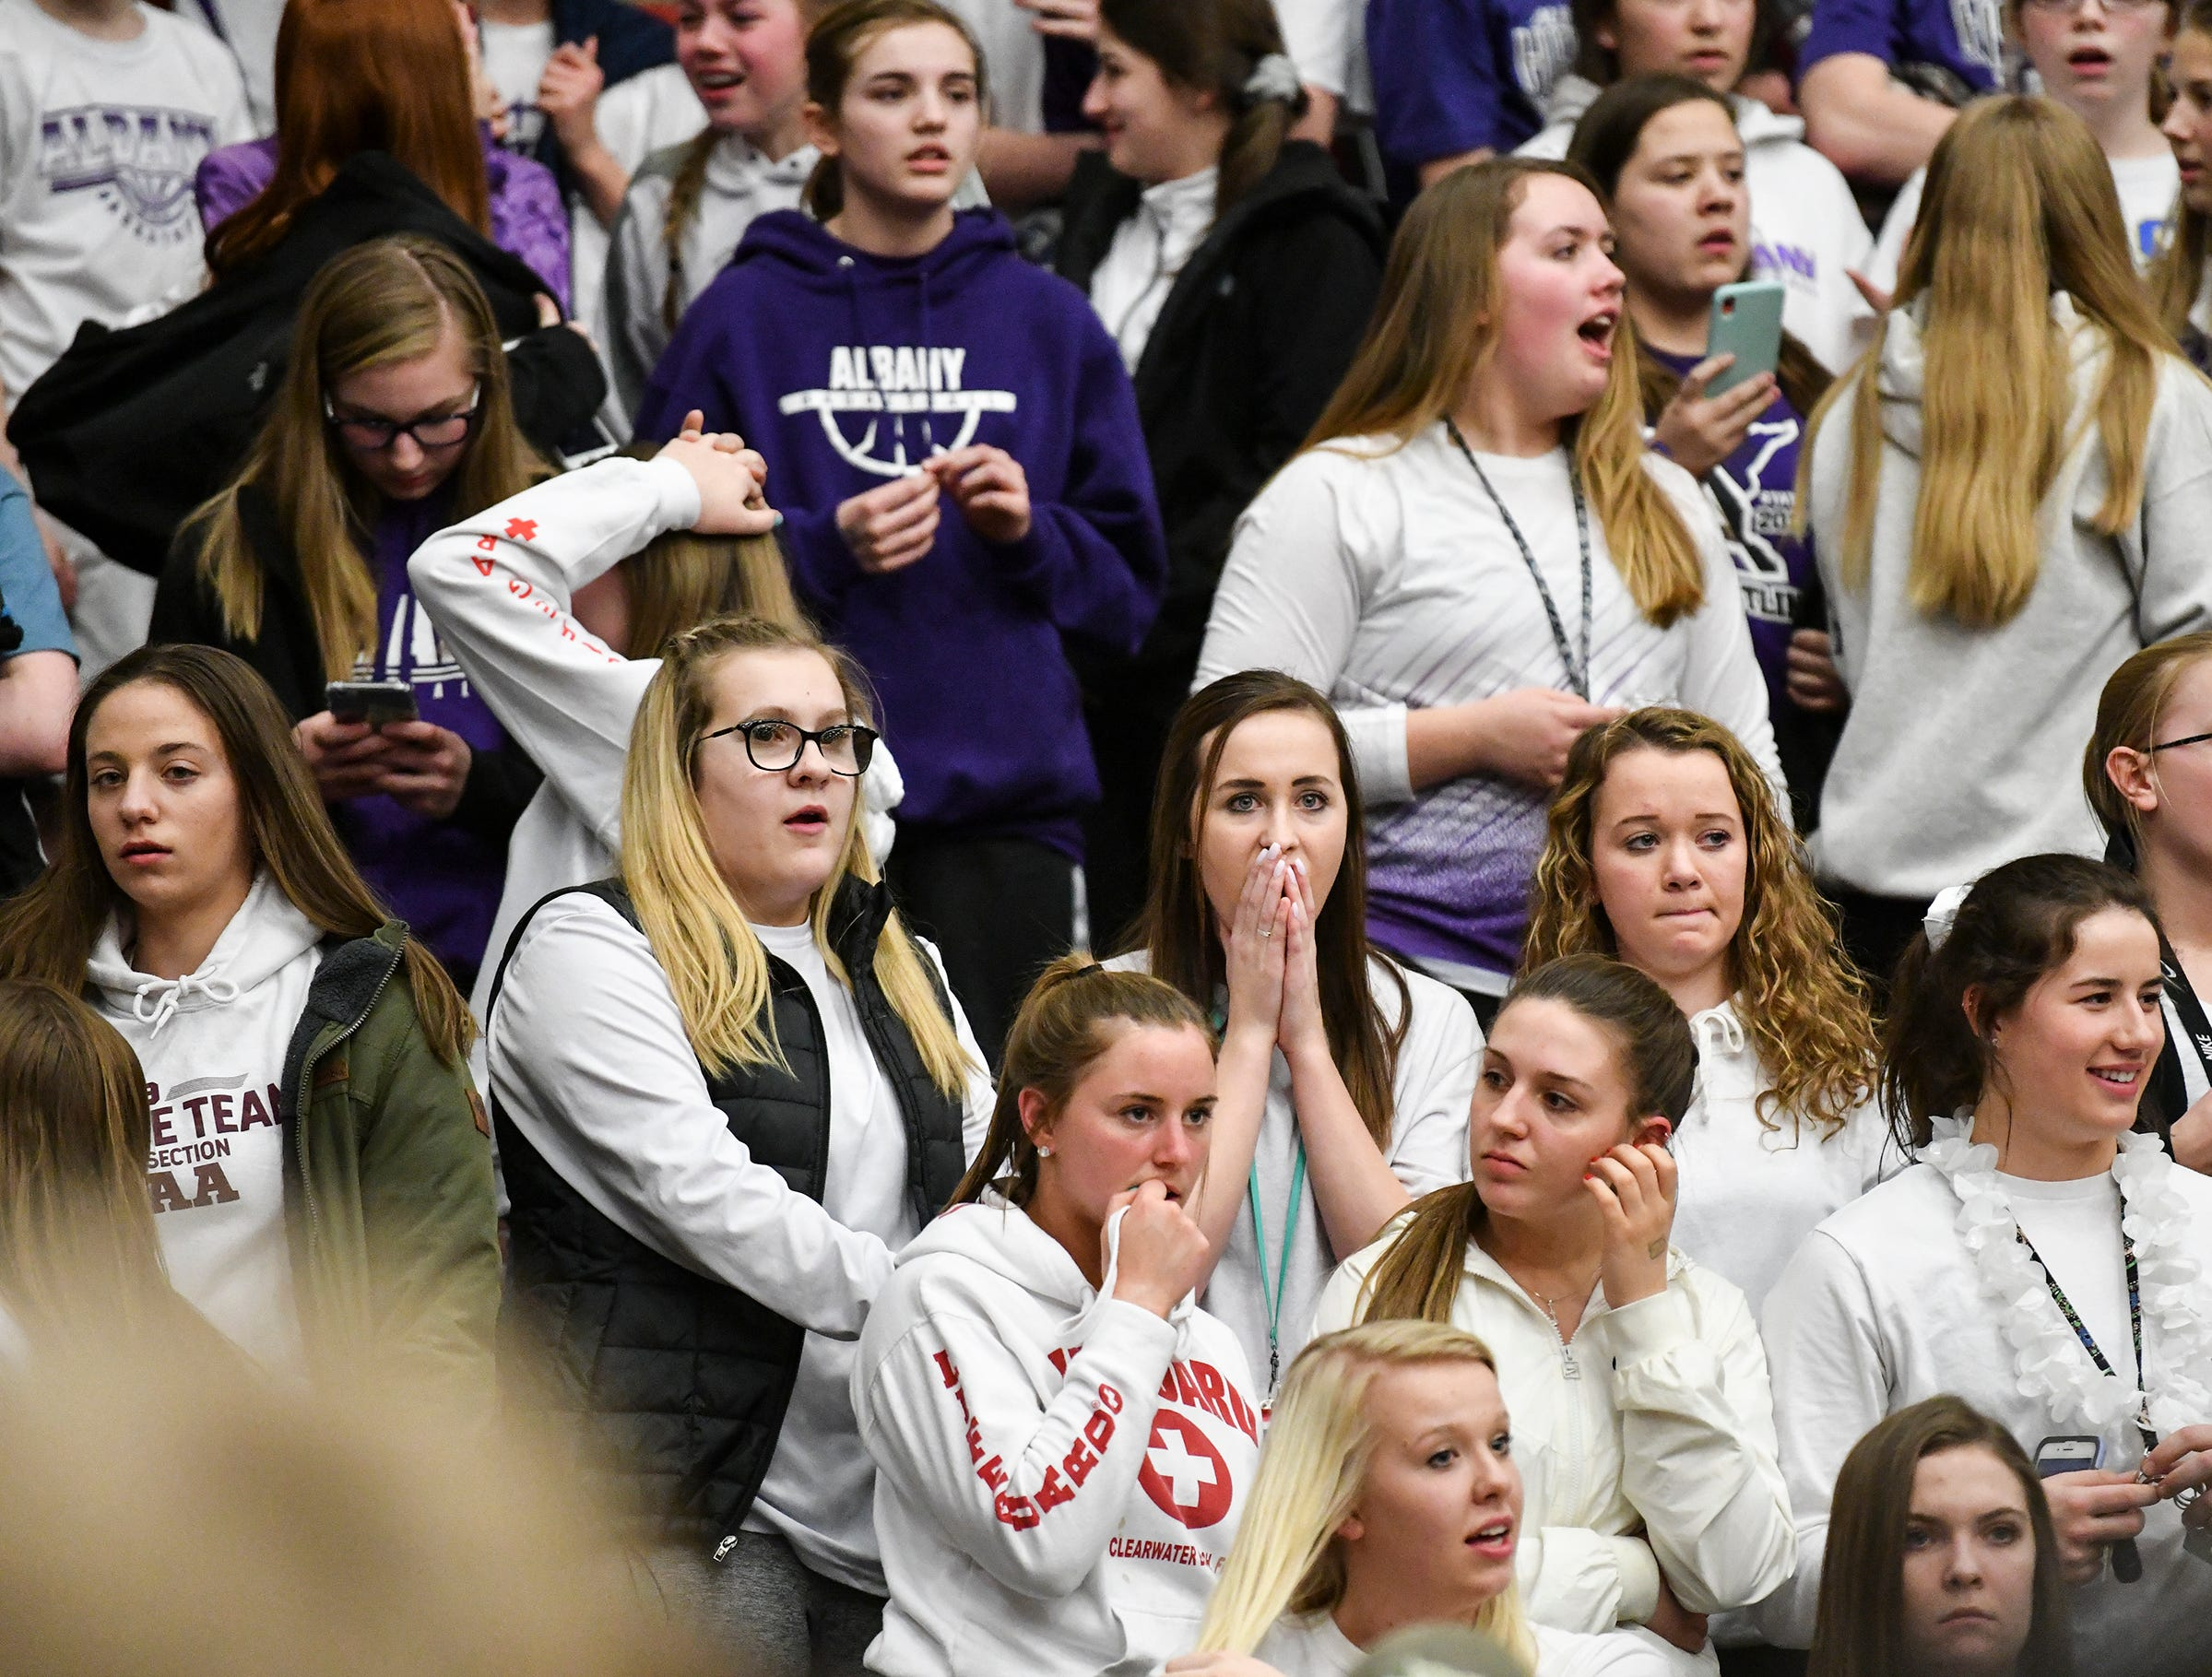 Albany fans react as Melrose is named the winning team following  the second half of the Friday, March 15, Section 6-2A championship game at Halenbeck Hall in St. Cloud.